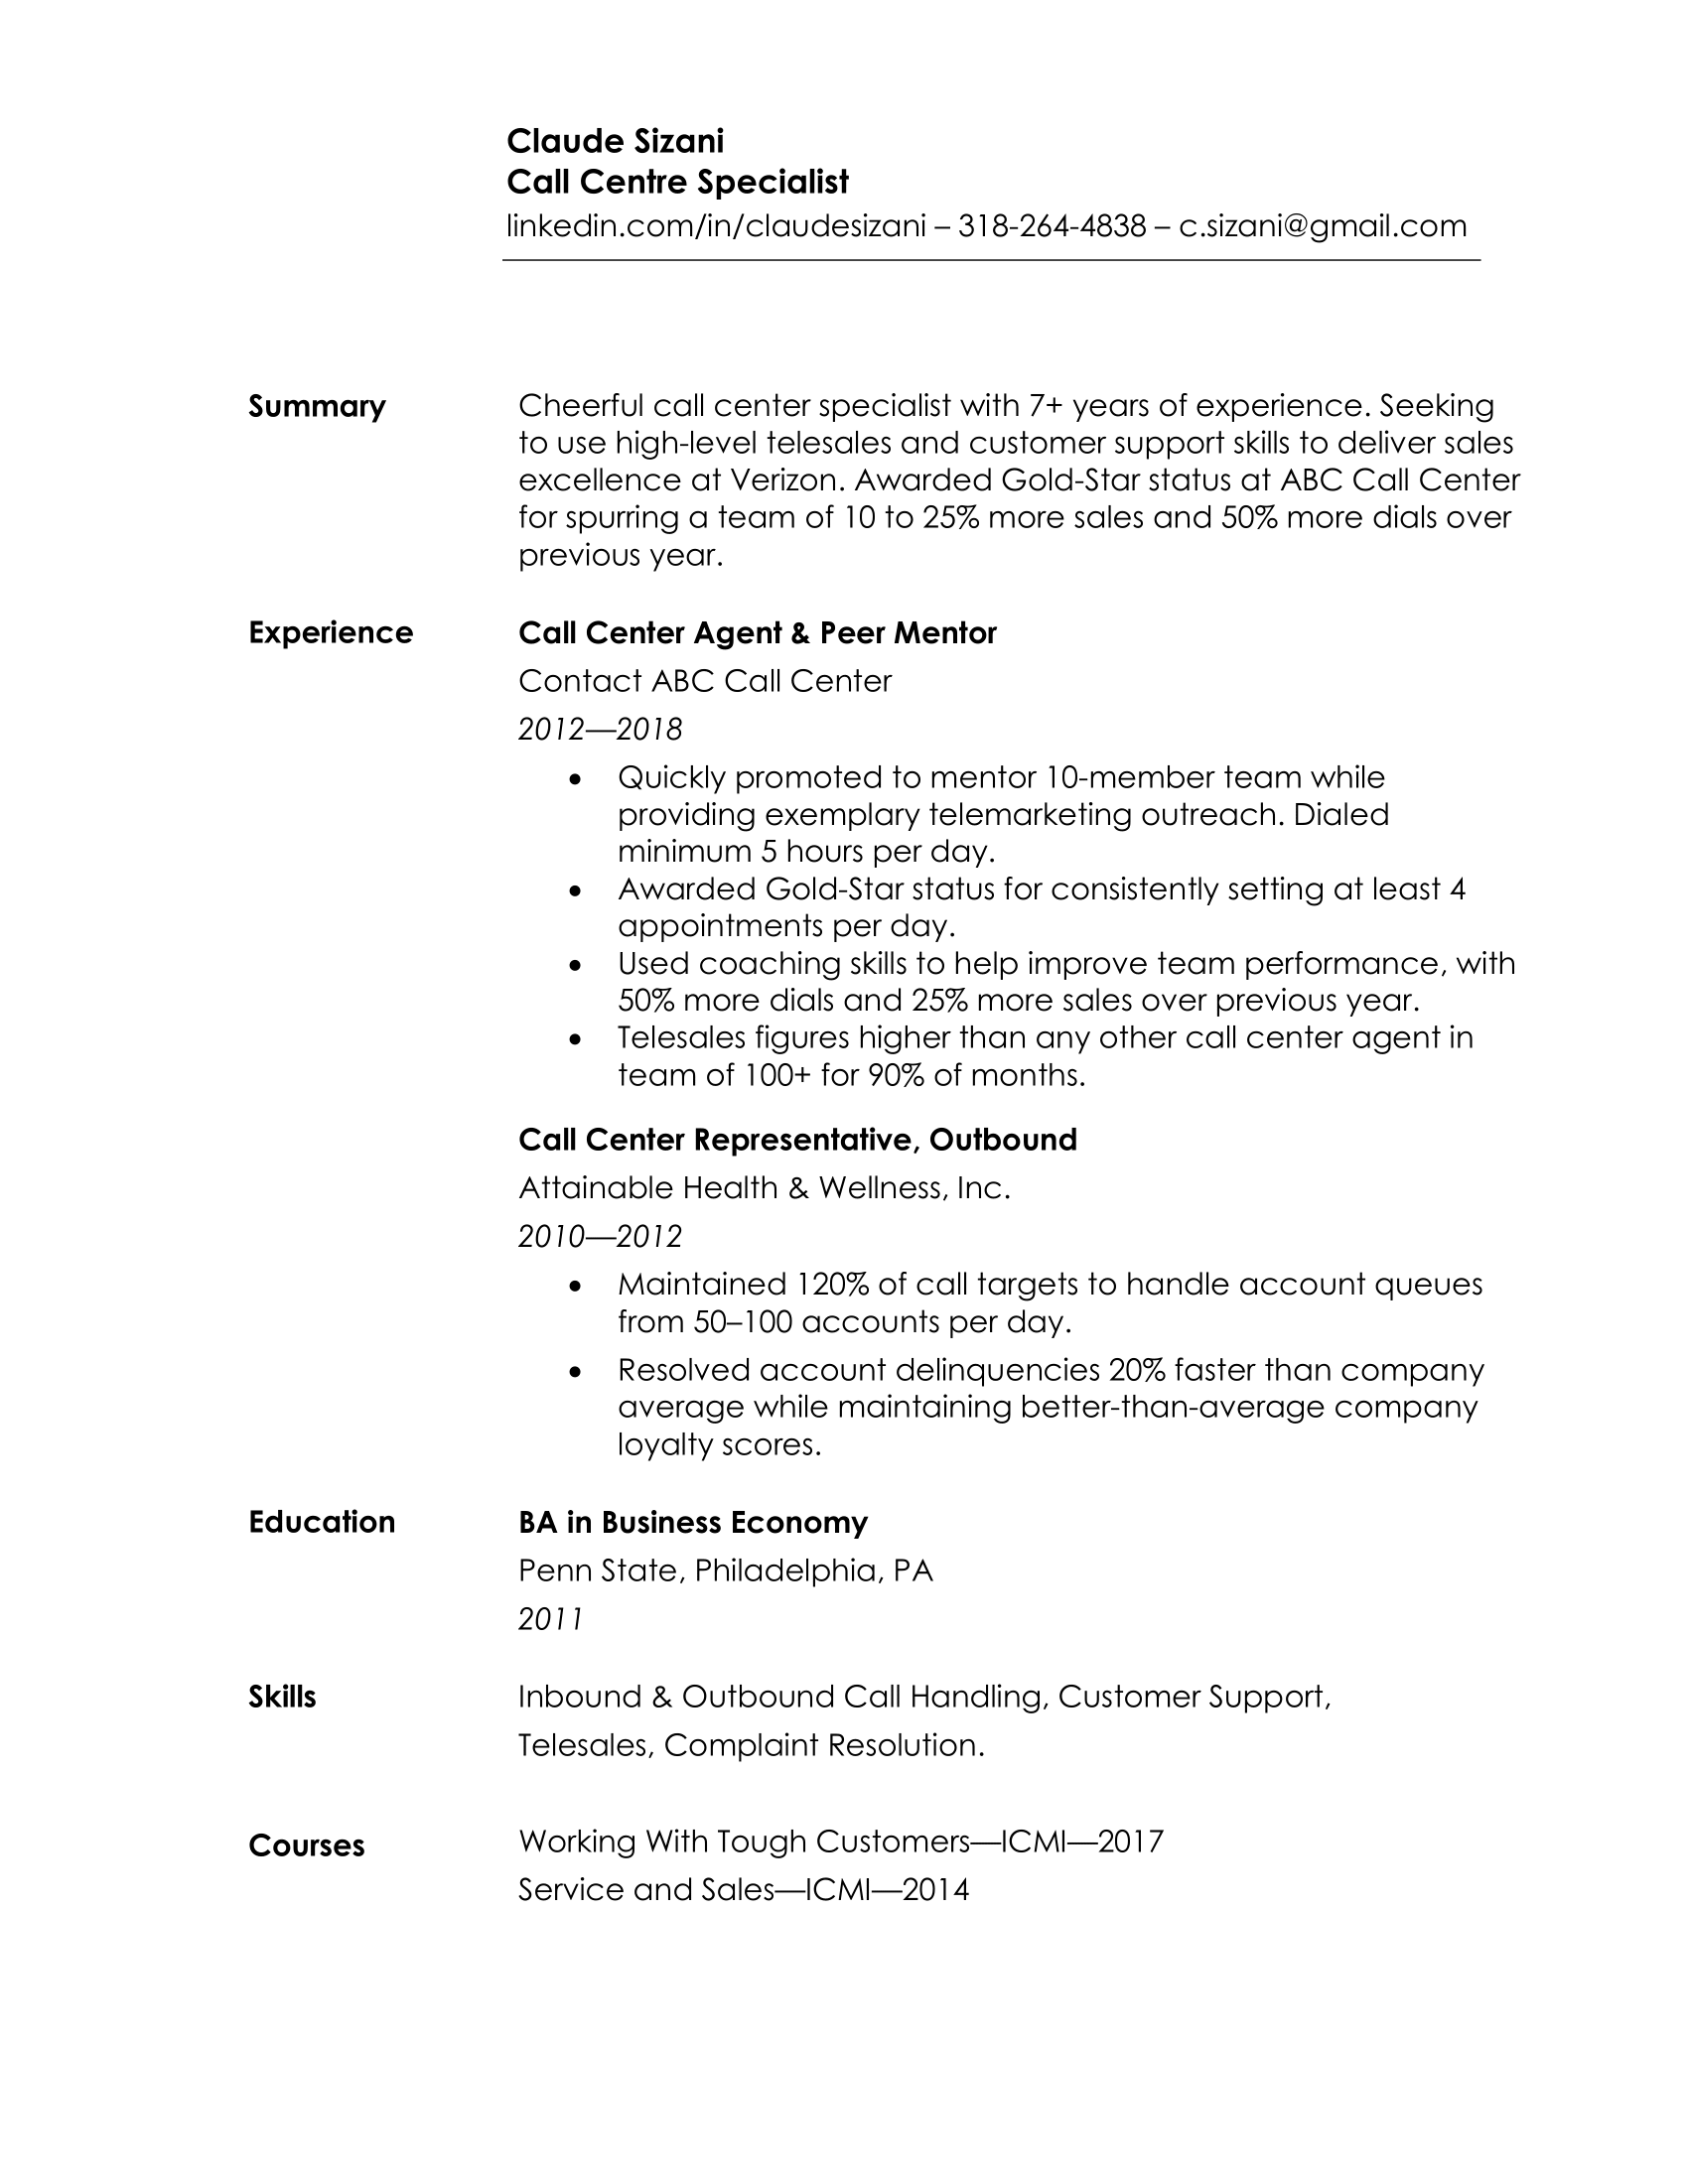 Example of a Simple Resume Format and Layout (MS Word)